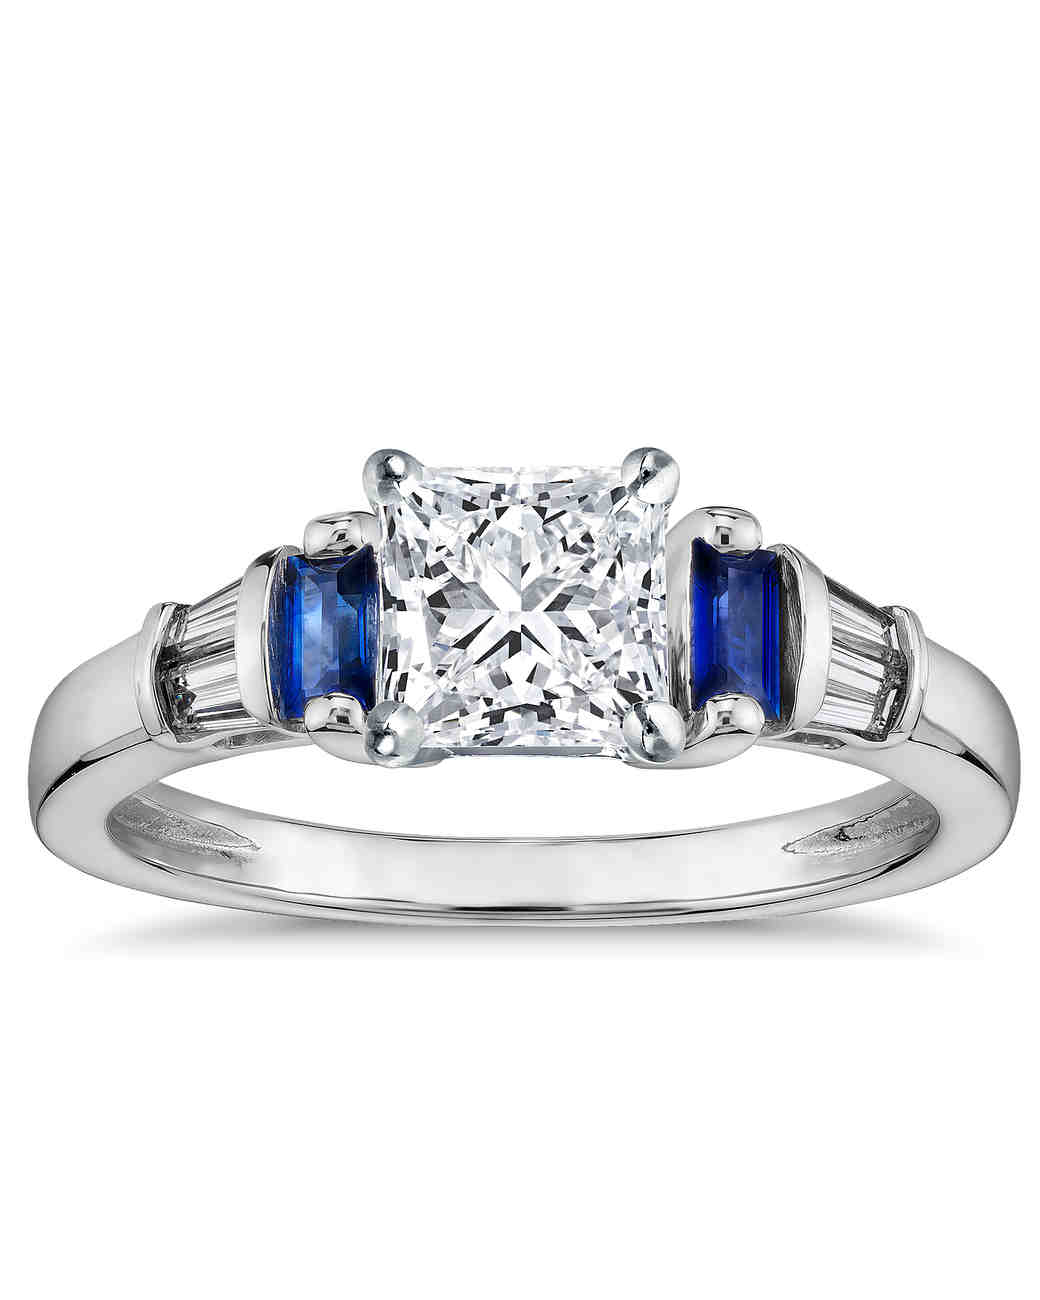 cfm sapphire blue engagement diamond in gold rings engagementdetails accents wedding white laced halo ring and